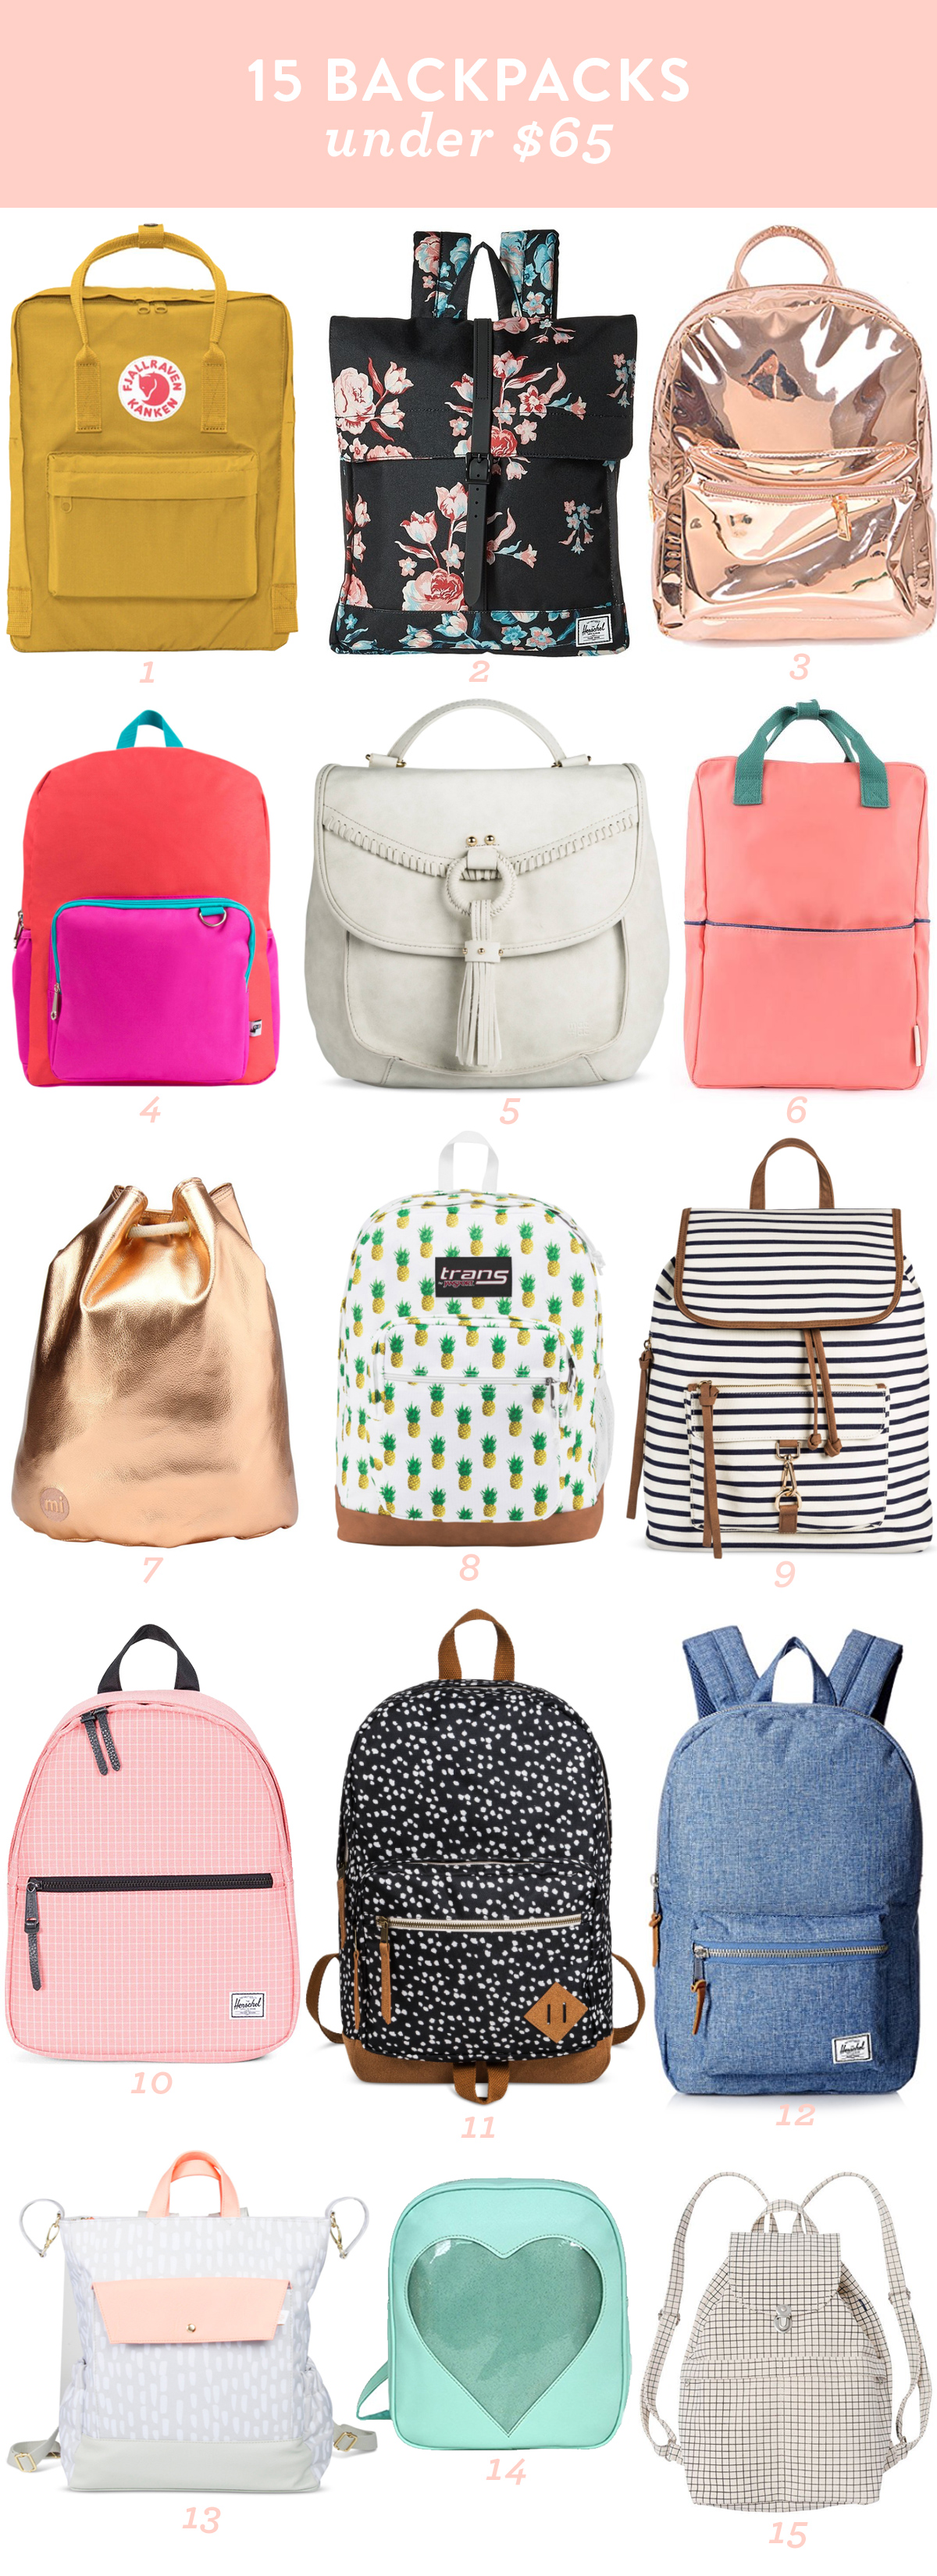 Cute and trendy backpacks for school or college all less than $65. Many are less than $40!